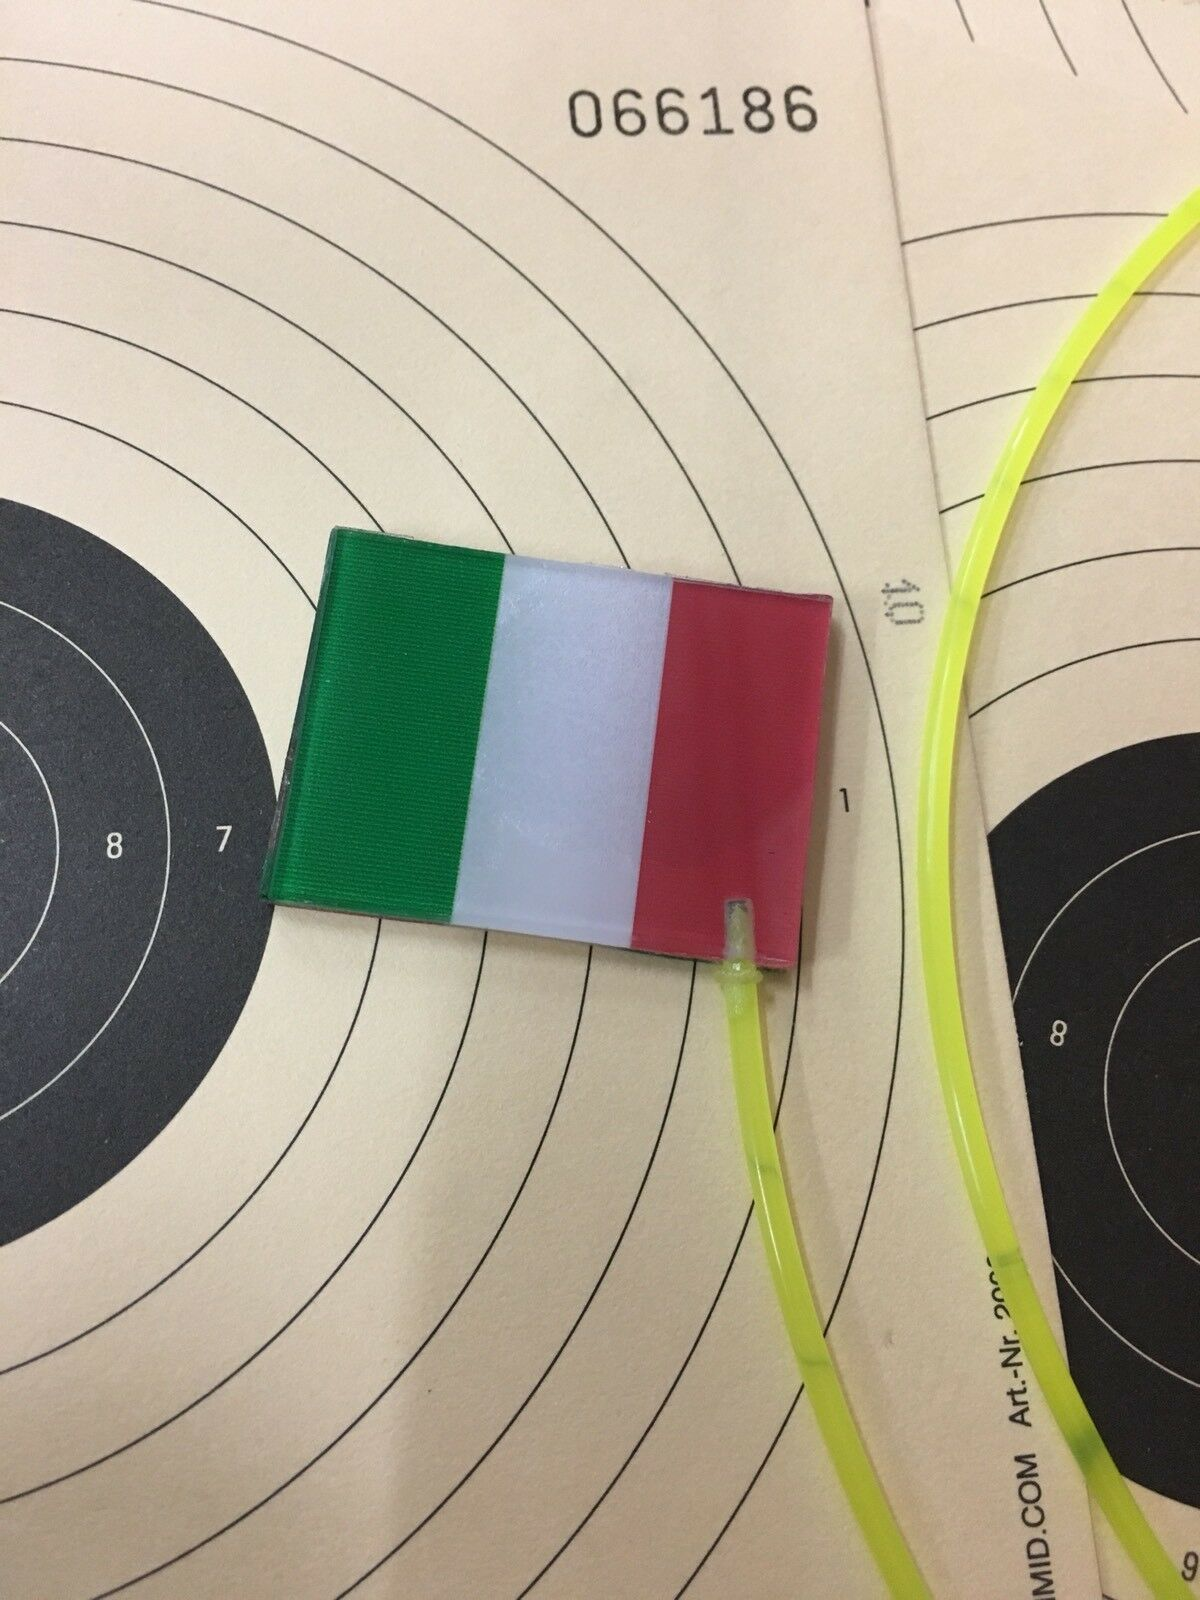 Italien Flag Safety Flag Olympic Shooting